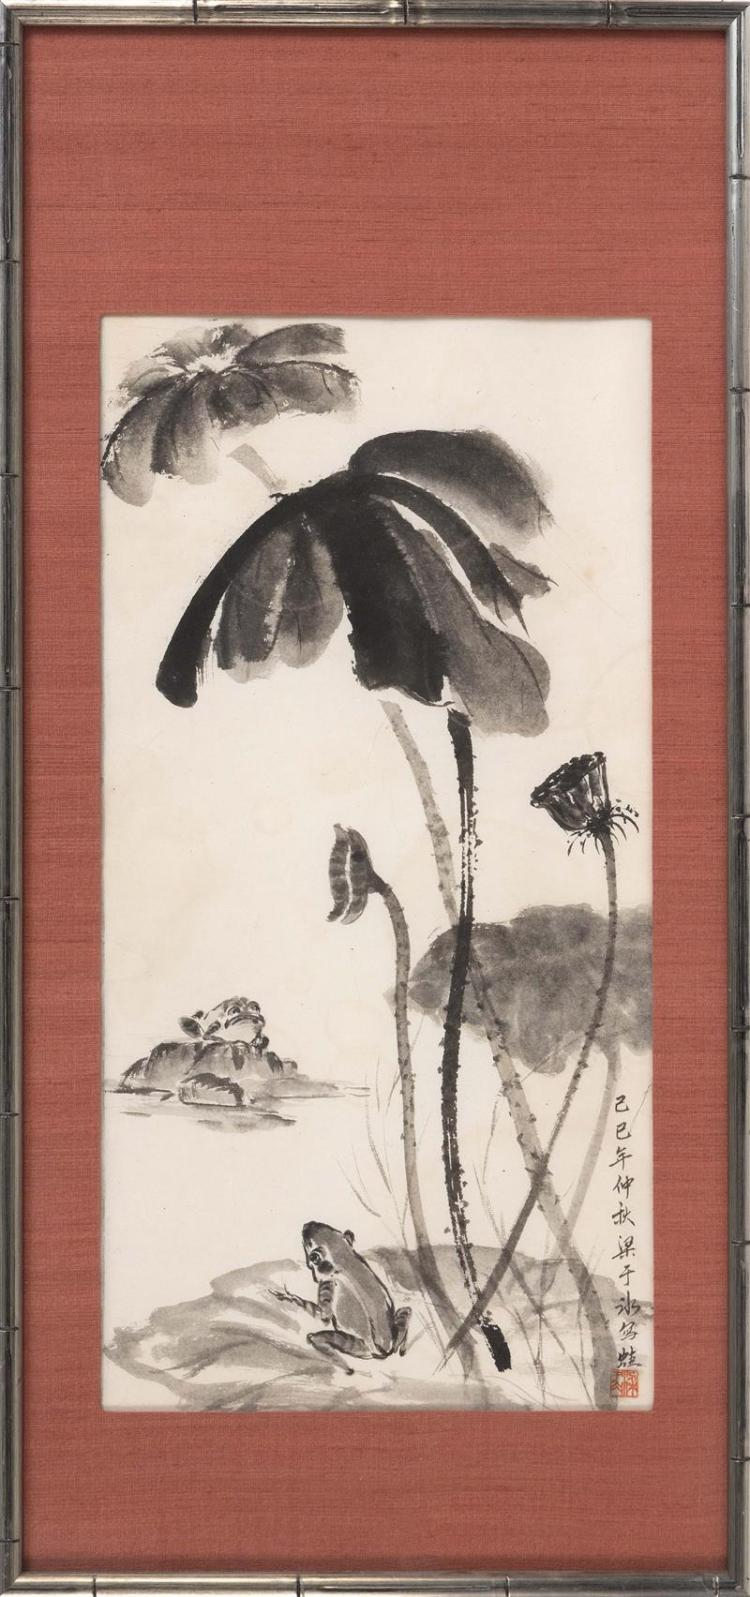 FRAMED PAINTING ON PAPER Depicting two frogs and lotus. Marked with calligraphy and seal marks. 26.5